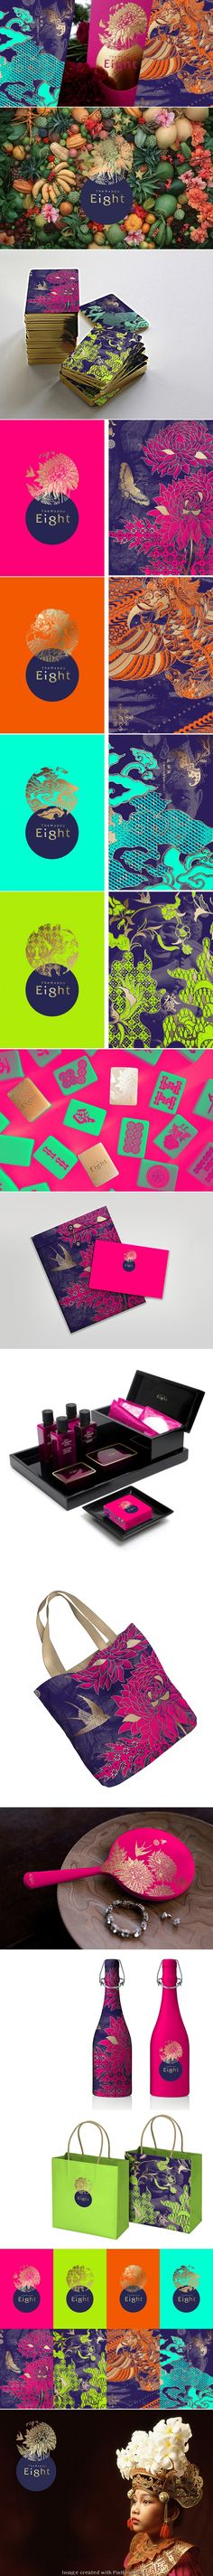 Wow - how beautiful are the illustrations used in this branding? Very inspiring! #design #logo #branding